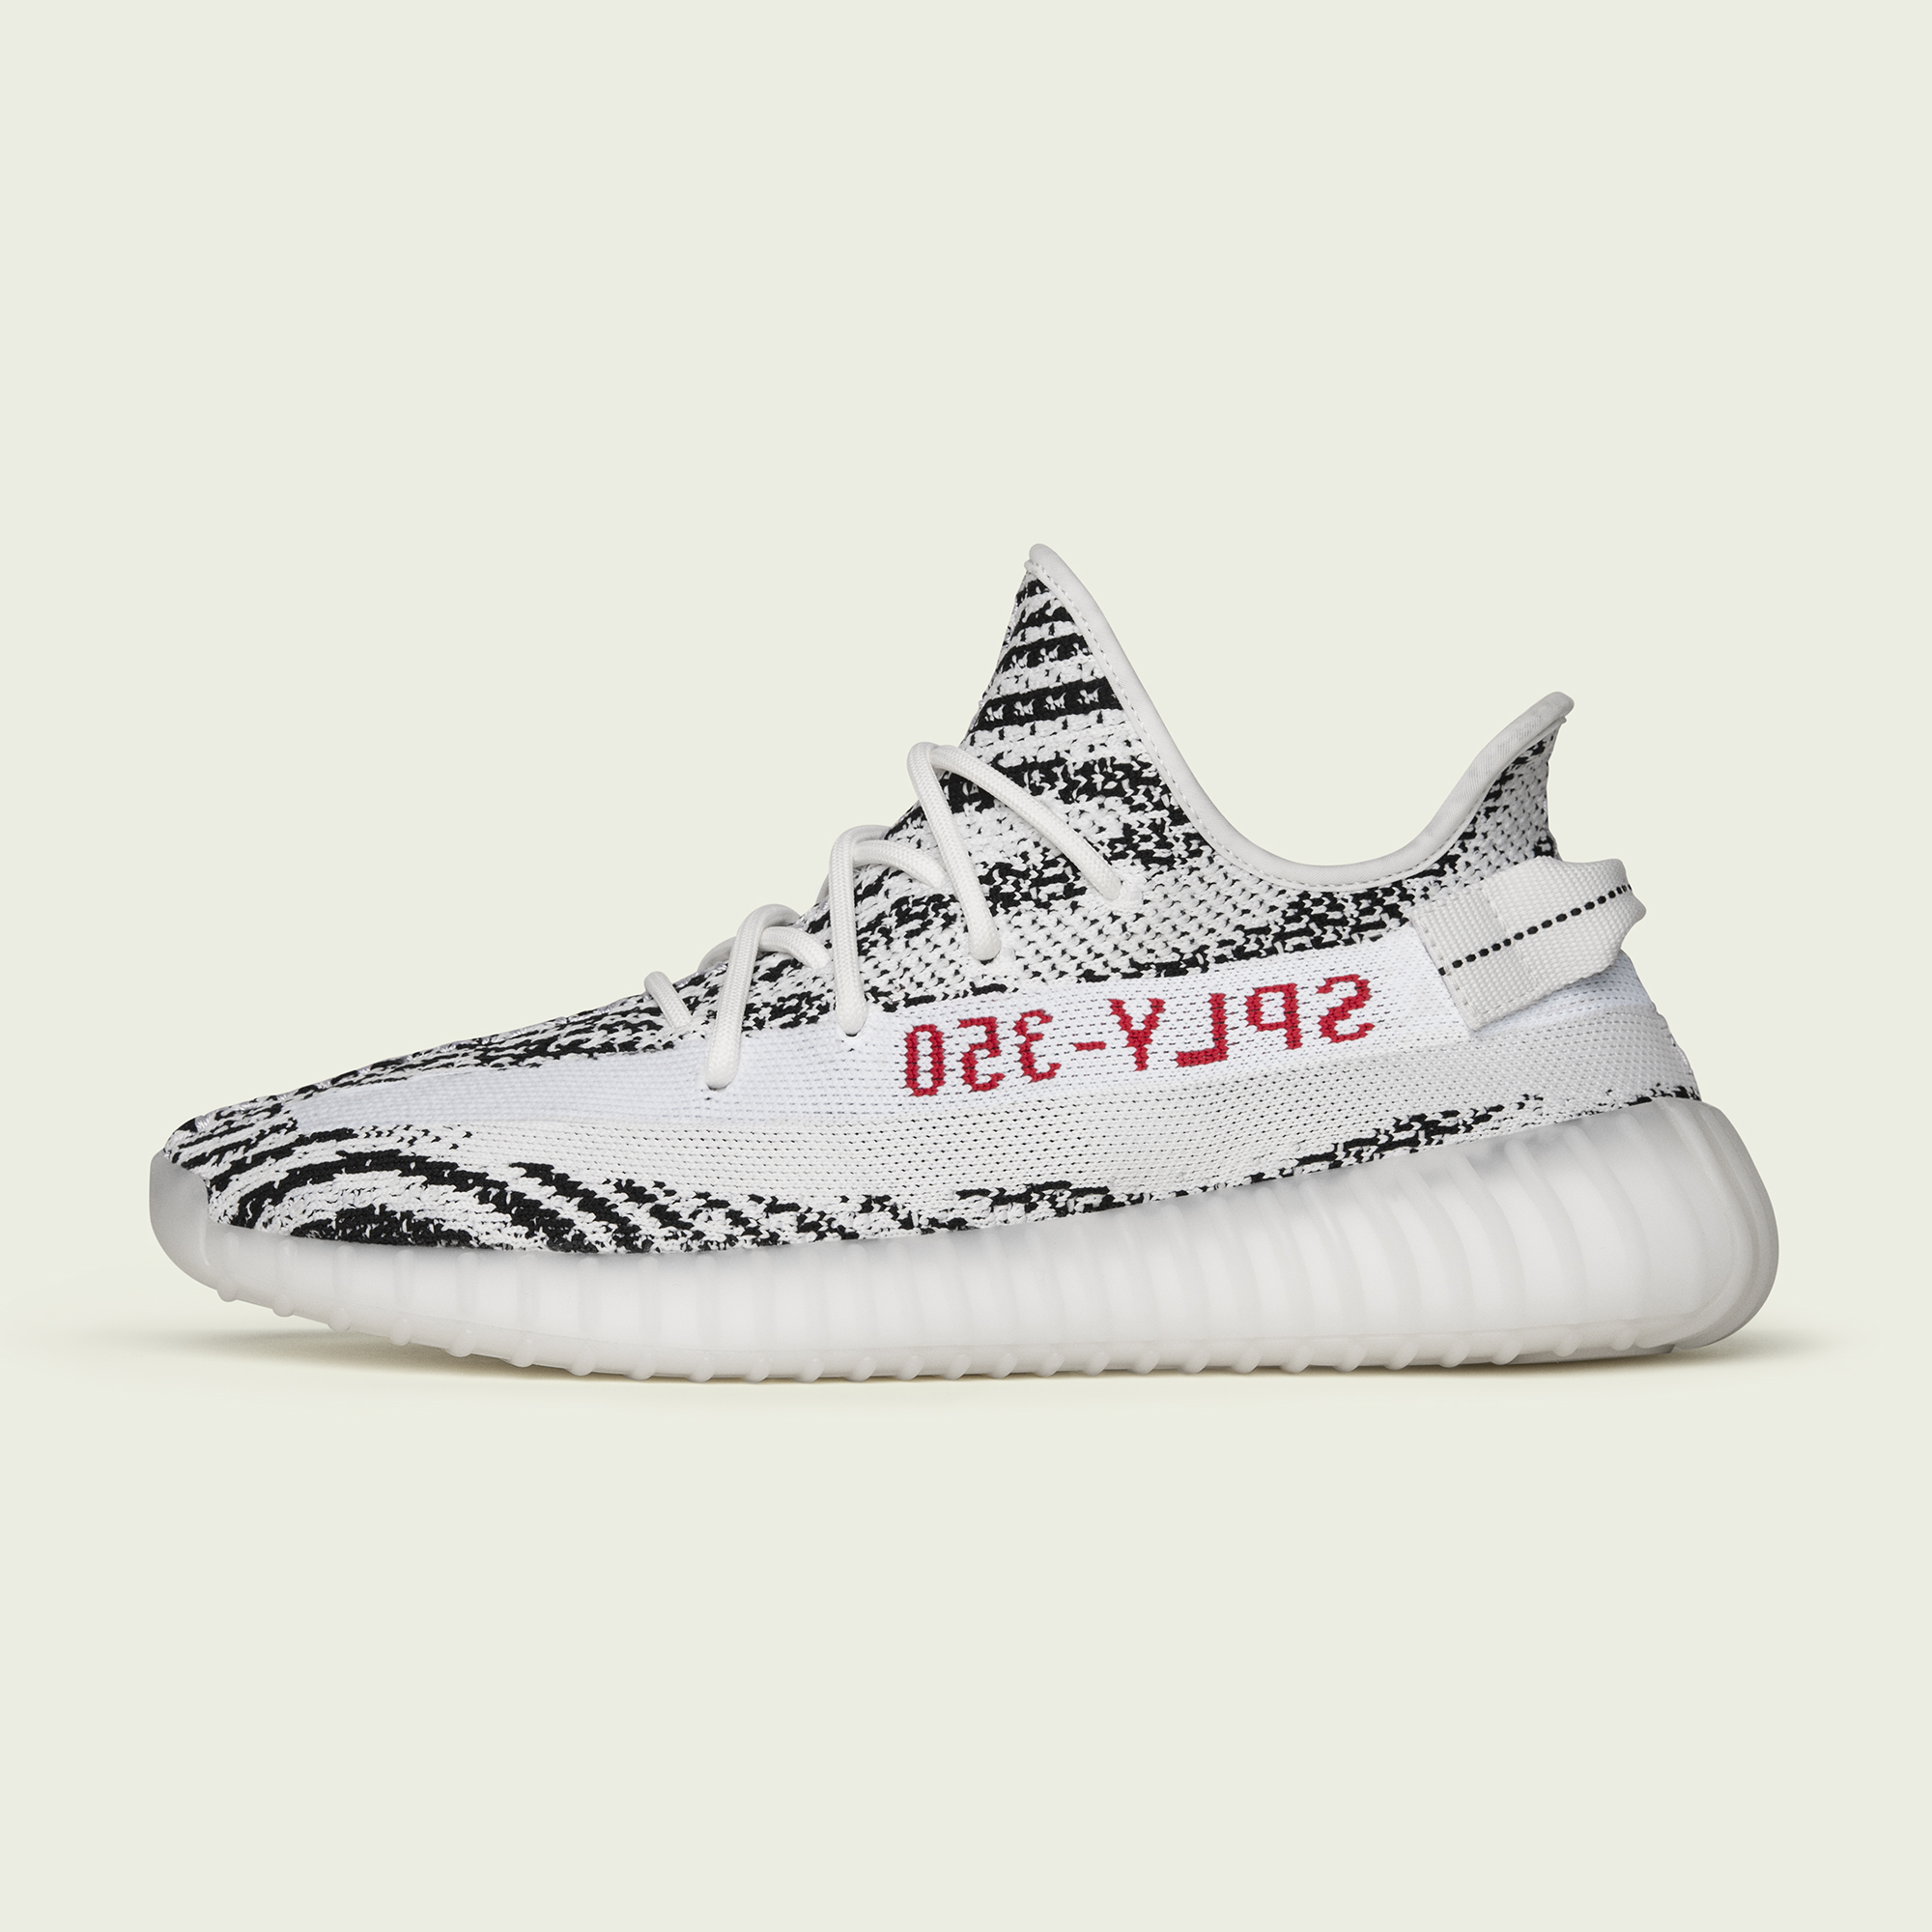 BUY Adidas Yeezy Boost 350 V2 Infant Cream White